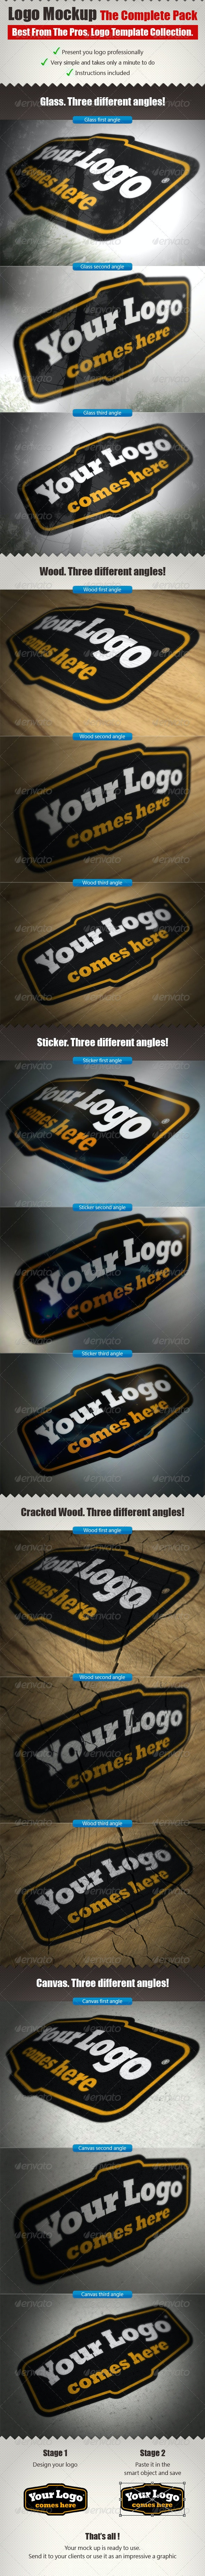 The Complete Logo Mock Ups Pack - Logo Product Mock-Ups